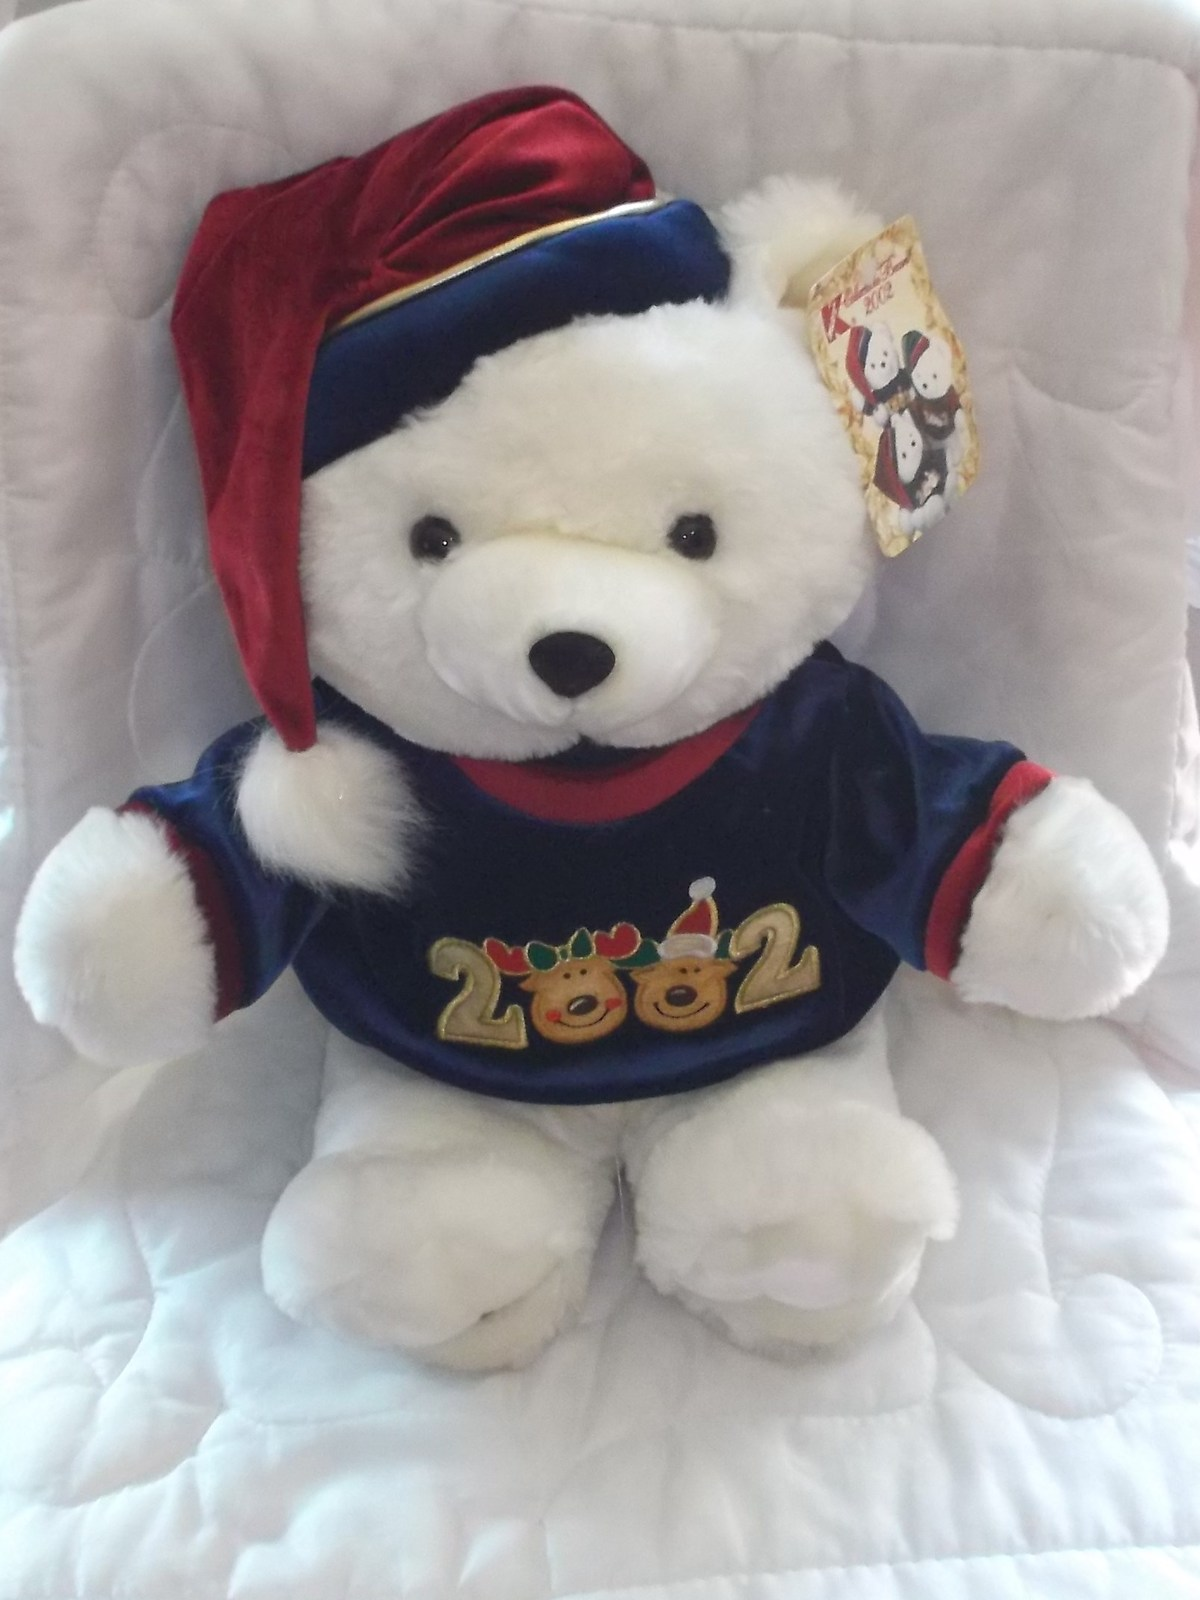 Dan Dee Kmart 2002 Christmas Holiday Teddy and 50 similar items